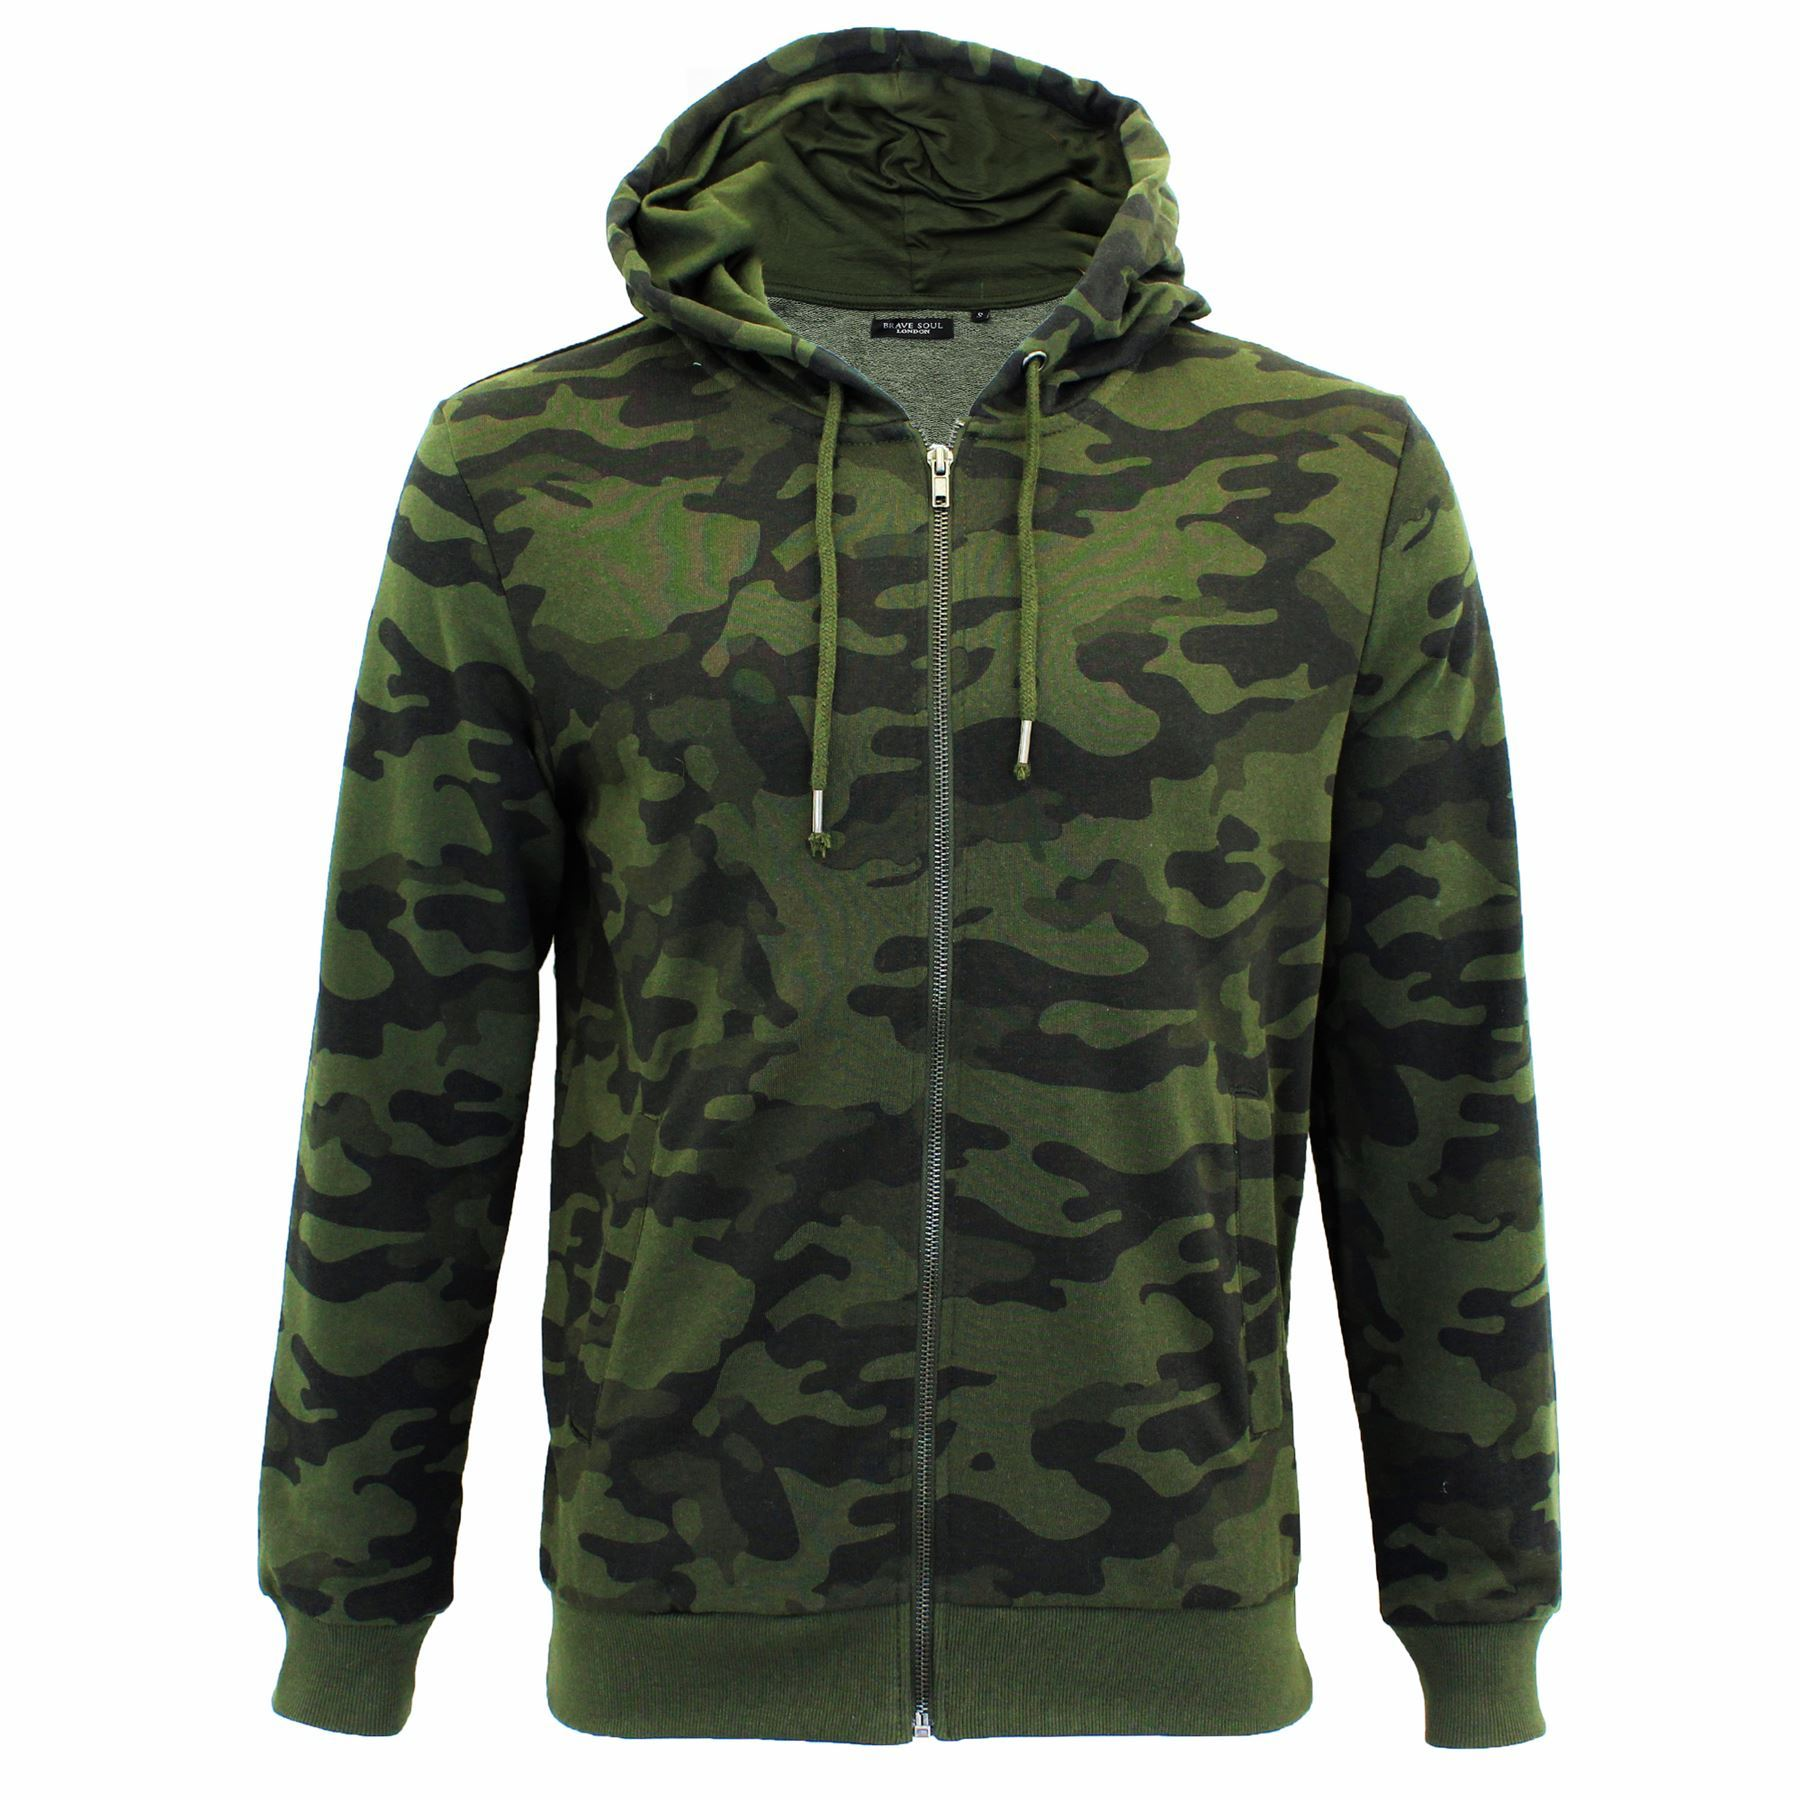 Find great deals on eBay for camo zip up hoodie. Shop with confidence.